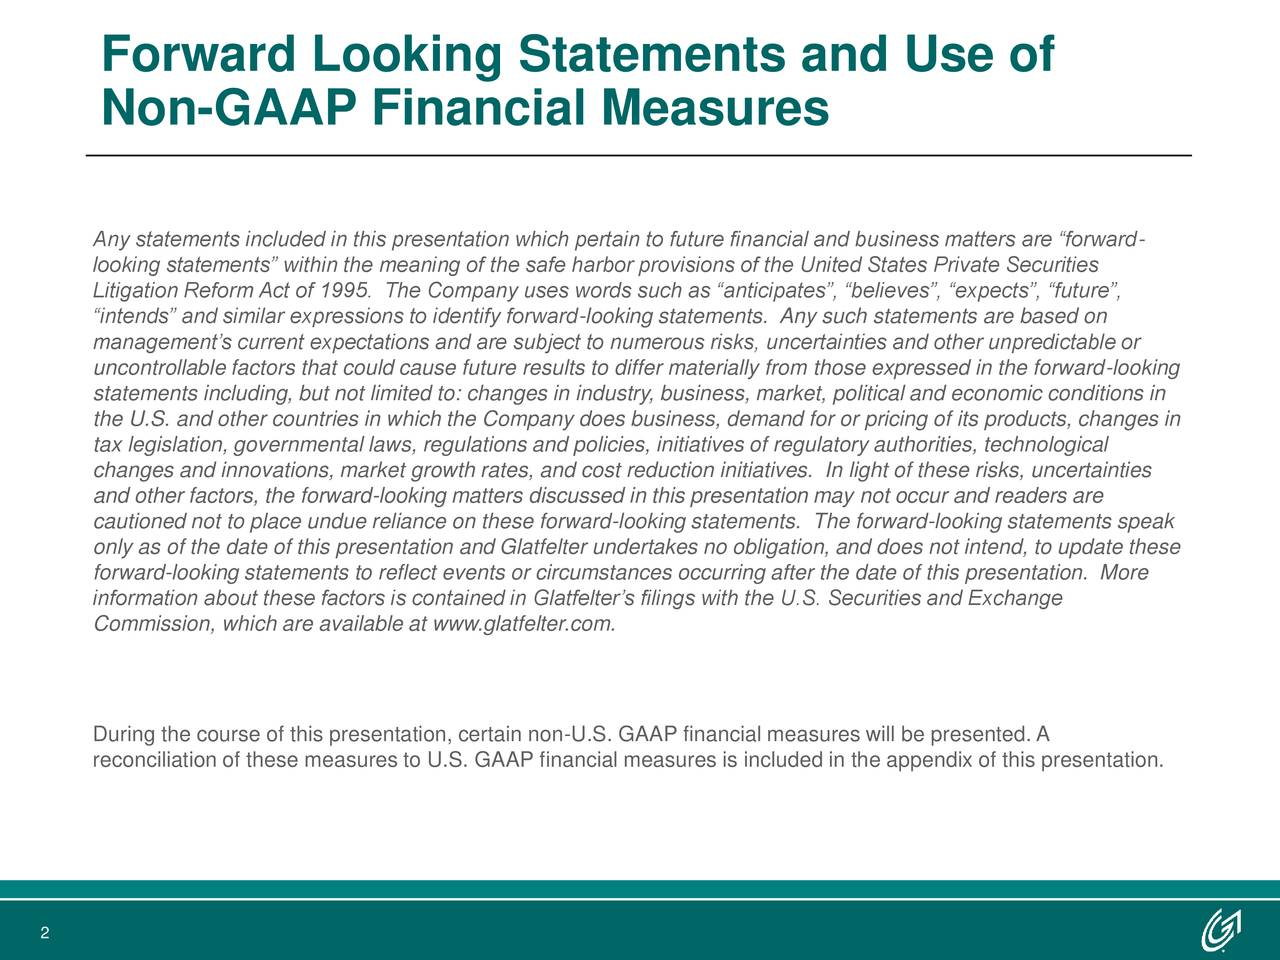 """Non-GAAP Financial Measures Any statements included in this presentation which pertain to future financial and business matters are """"forward- looking statements"""" within the meaning of the safe harbor provisions of the United States Private Securities Litigation Reform Act of 1995. The Company uses words such as """"anticipates"""", """"believes"""", """"expects"""", """"future"""", """"intends"""" and similar expressions to identify forward-looking statements. Any such statements are based on management's current expectations and are subject to numerous risks, uncertainties and other unpredictable or uncontrollable factors that could cause future results to differ materially from those expressed in the forward-looking statements including, but not limited to: changes in industry, business, market, political and economic conditions in the U.S. and other countries in which the Company does business, demand for or pricing of its products, changes in tax legislation, governmental laws, regulations and policies, initiatives of regulatory authorities, technological changes and innovations, market growth rates, and cost reduction initiatives. In light of these risks, uncertainties and other factors, the forward-looking matters discussed in this presentation may not occur and readers are cautioned not to place undue reliance on these forward-looking statements. The forward-looking statements speak only as of the date of this presentation and Glatfelter undertakes no obligation, and does not intend, to update these forward-looking statements to reflect events or circumstances occurring after the date of this presentation. More information about these factors is contained in Glatfelter's filings with the U.S. Securities and Exchange Commission, which are available at www.glatfelter.com. During the course of this presentation, certain non-U.S. GAAP financial measures will be presented. A reconciliation of these measures to U.S. GAAP financial measures is included in the appendix of this presentation. 2"""